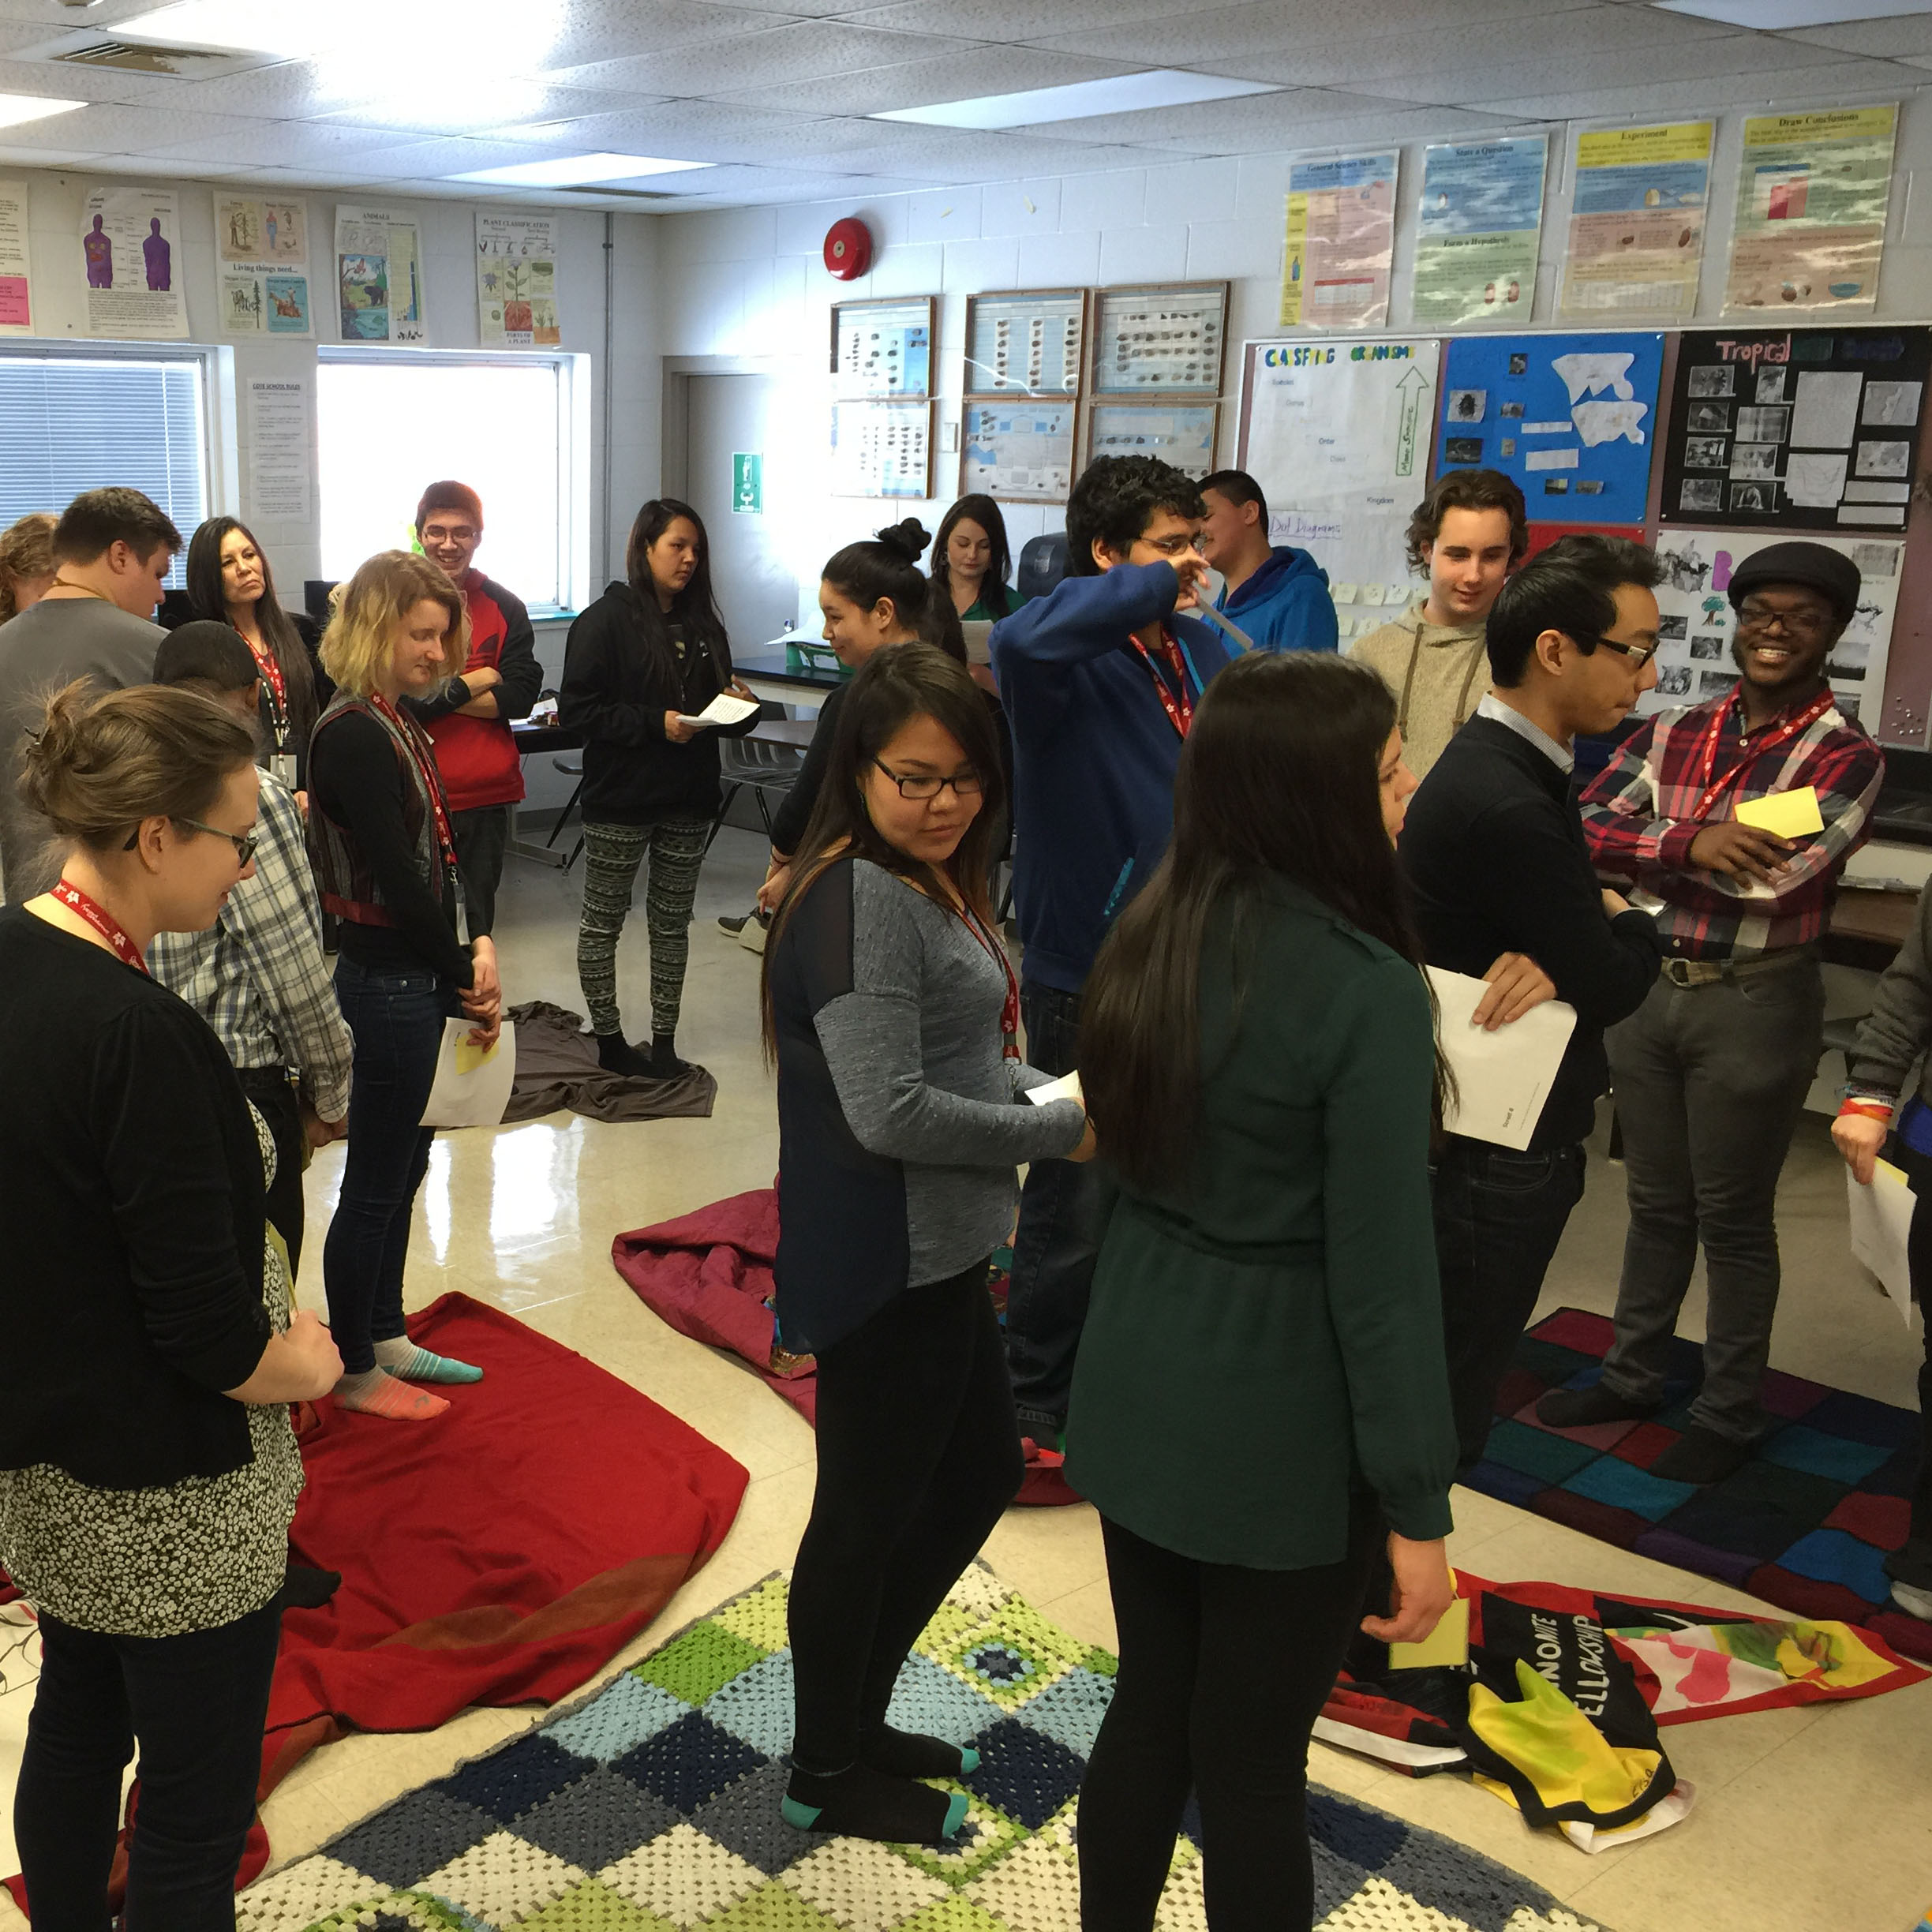 Unlearning Canada's history: The Blanket Exercise